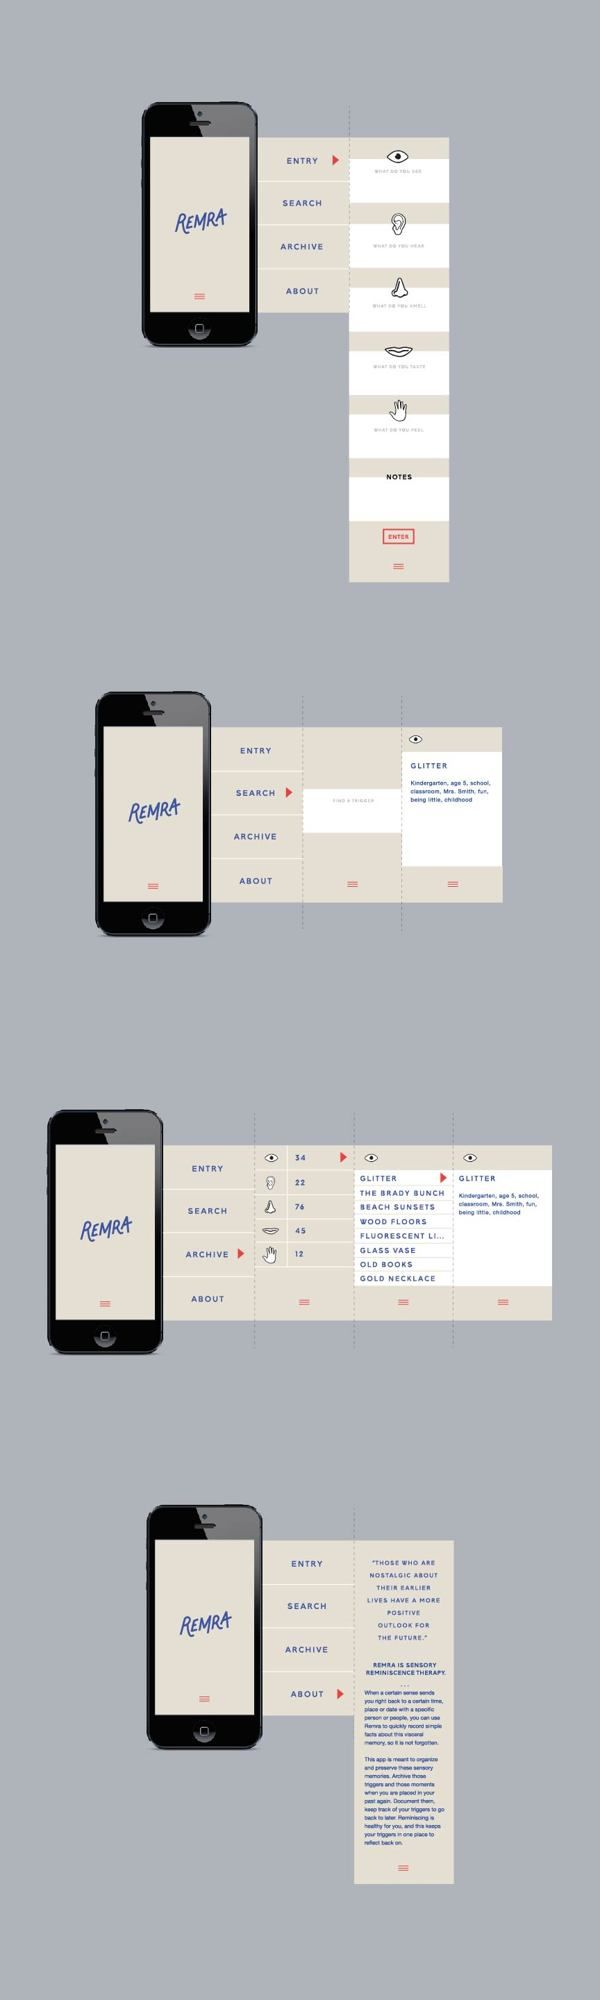 Remra on App Design Served